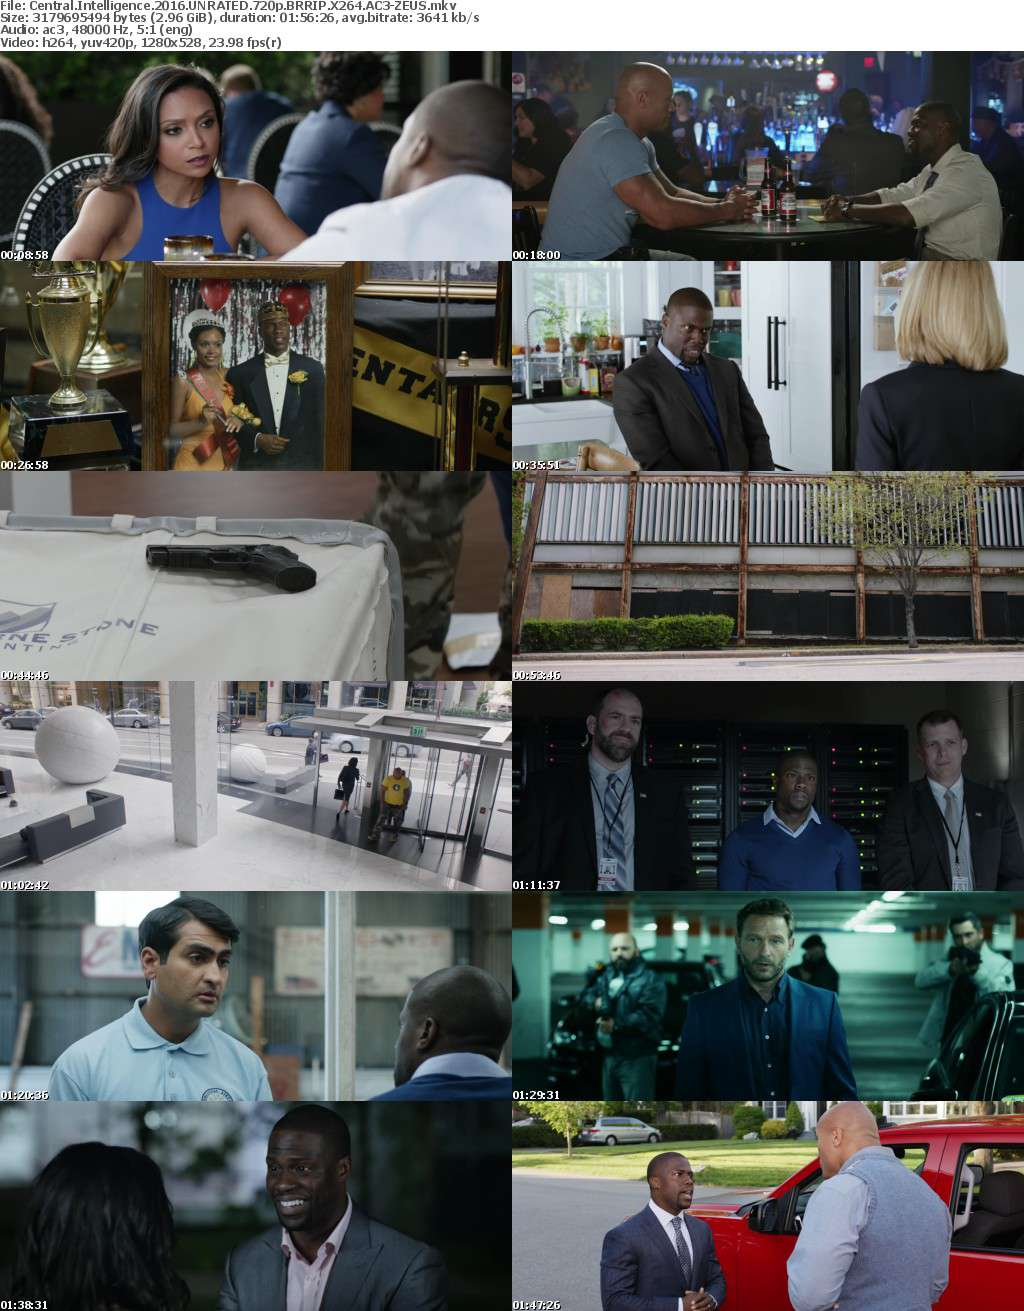 Central Intelligence 2016 UNRATED 720p BRRIP X264 AC3-ZEUS